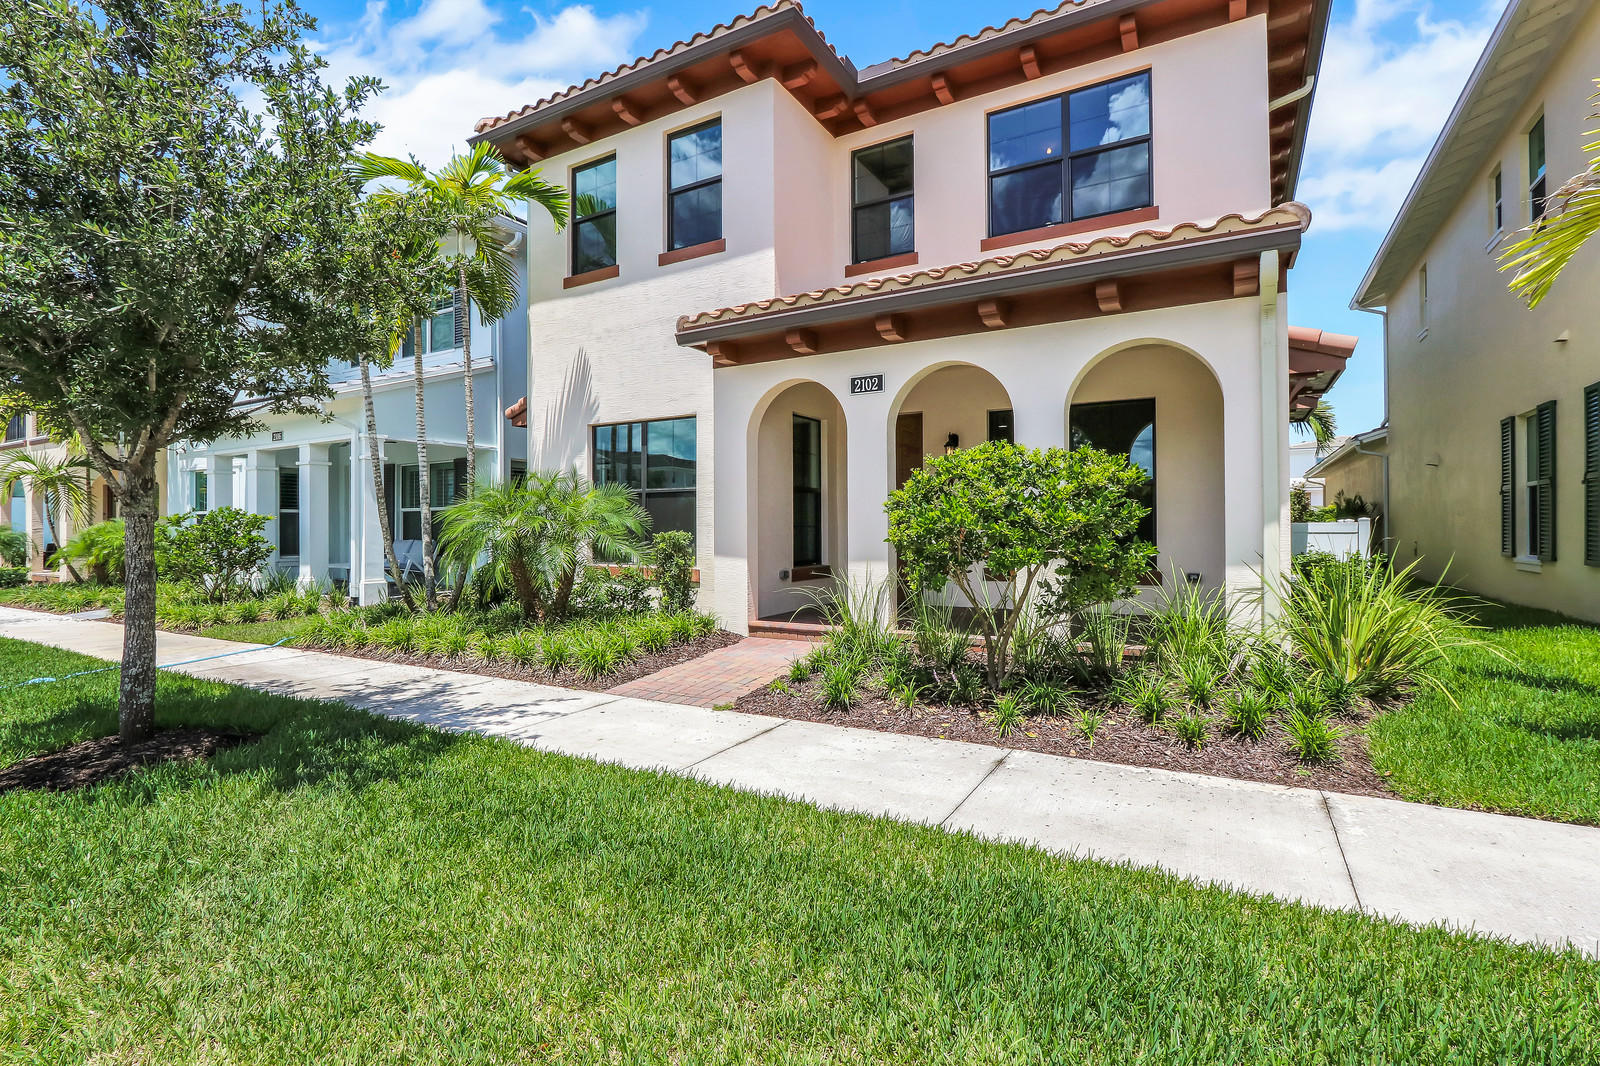 New Home for sale at 2102 Dickens Terrace in Palm Beach Gardens